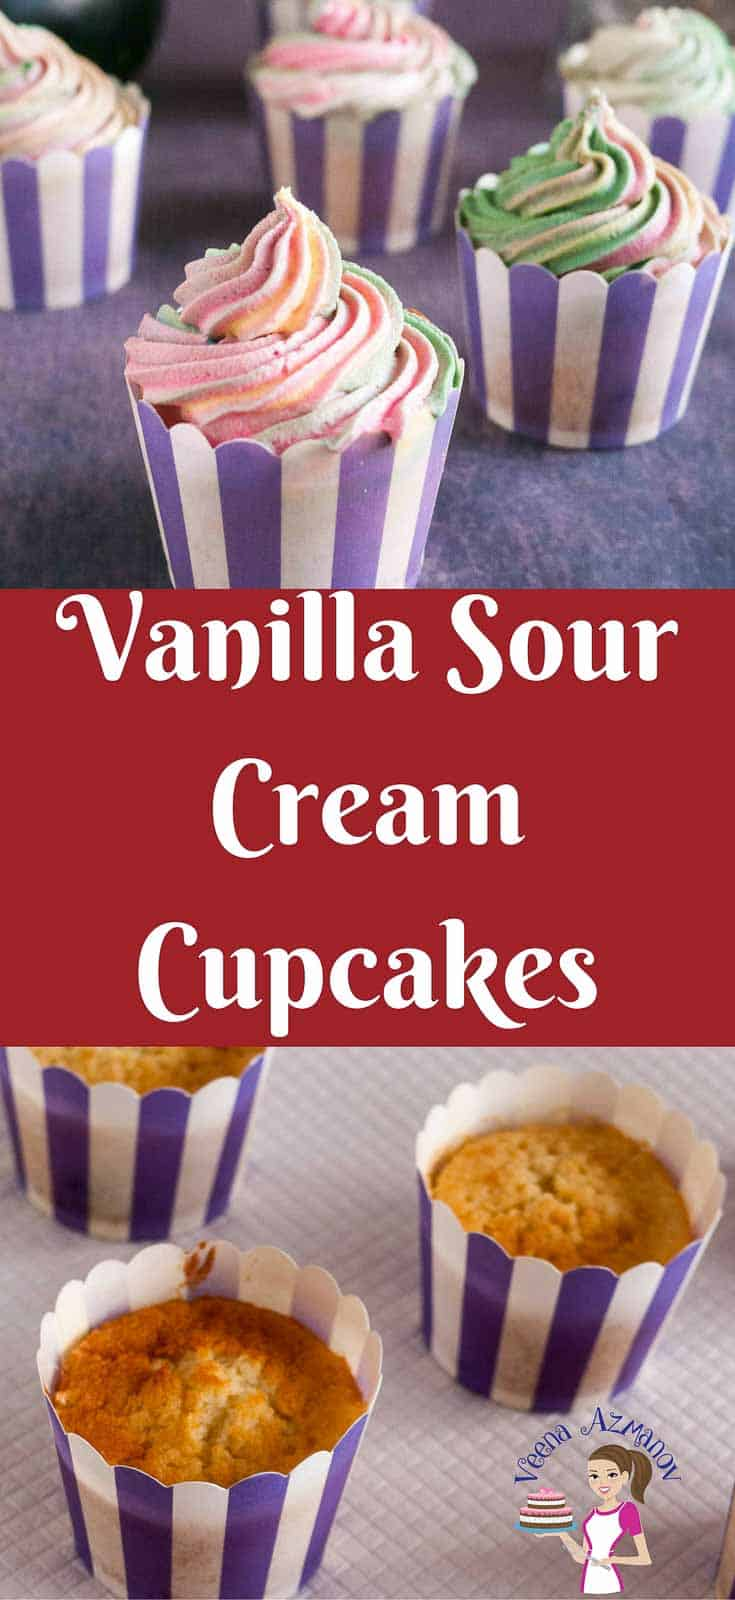 Pinterest Image - These moist Vanilla Sour Cream Cupcakes is a simple easy and effortless recipe. A perfect recipe to have on hand when you want to make a quick but delicious no fuss cupcake recipe. The sour cream keeps them moist and creamy. Enjoy these as a tea cake just on it's own or make some delicious sweet cream buttercream to go with it